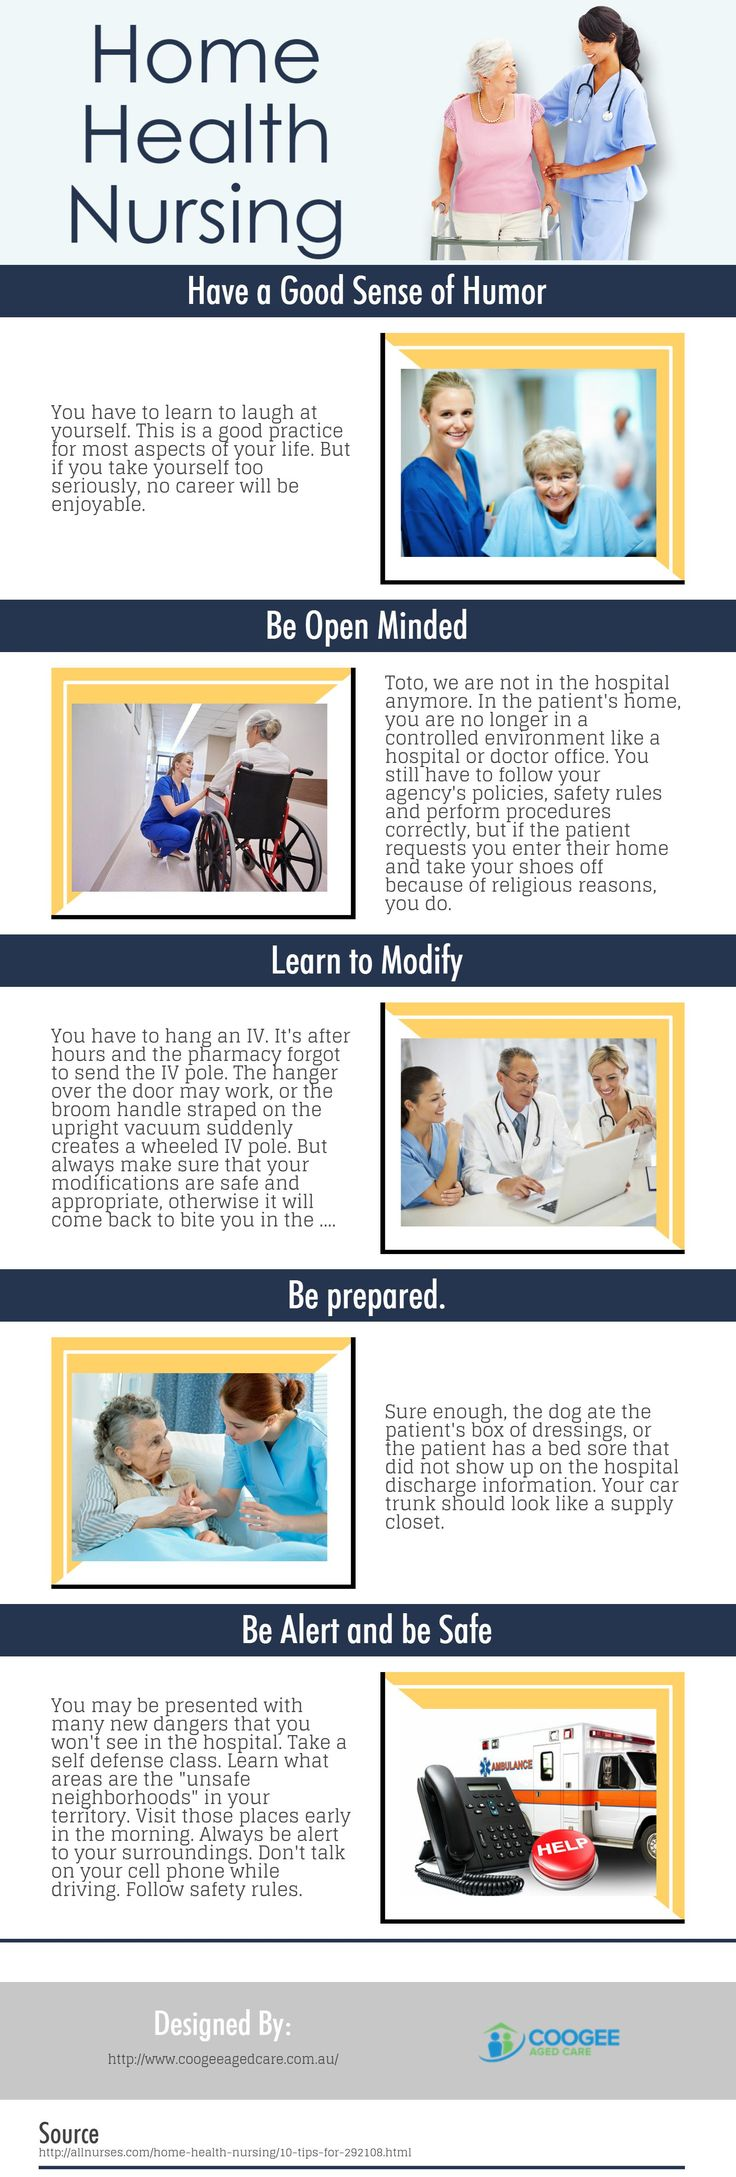 The following infographic is created by Coogee Aged Care. Home health nurses are becoming more popular and in great demand - providing the much-needed care to the aging population. A home health nurse works in the home with various patients, providing a wide array of treatments and support. In this infographic, we go over the five most prominent of them and discuss their responsibilities in some detail.